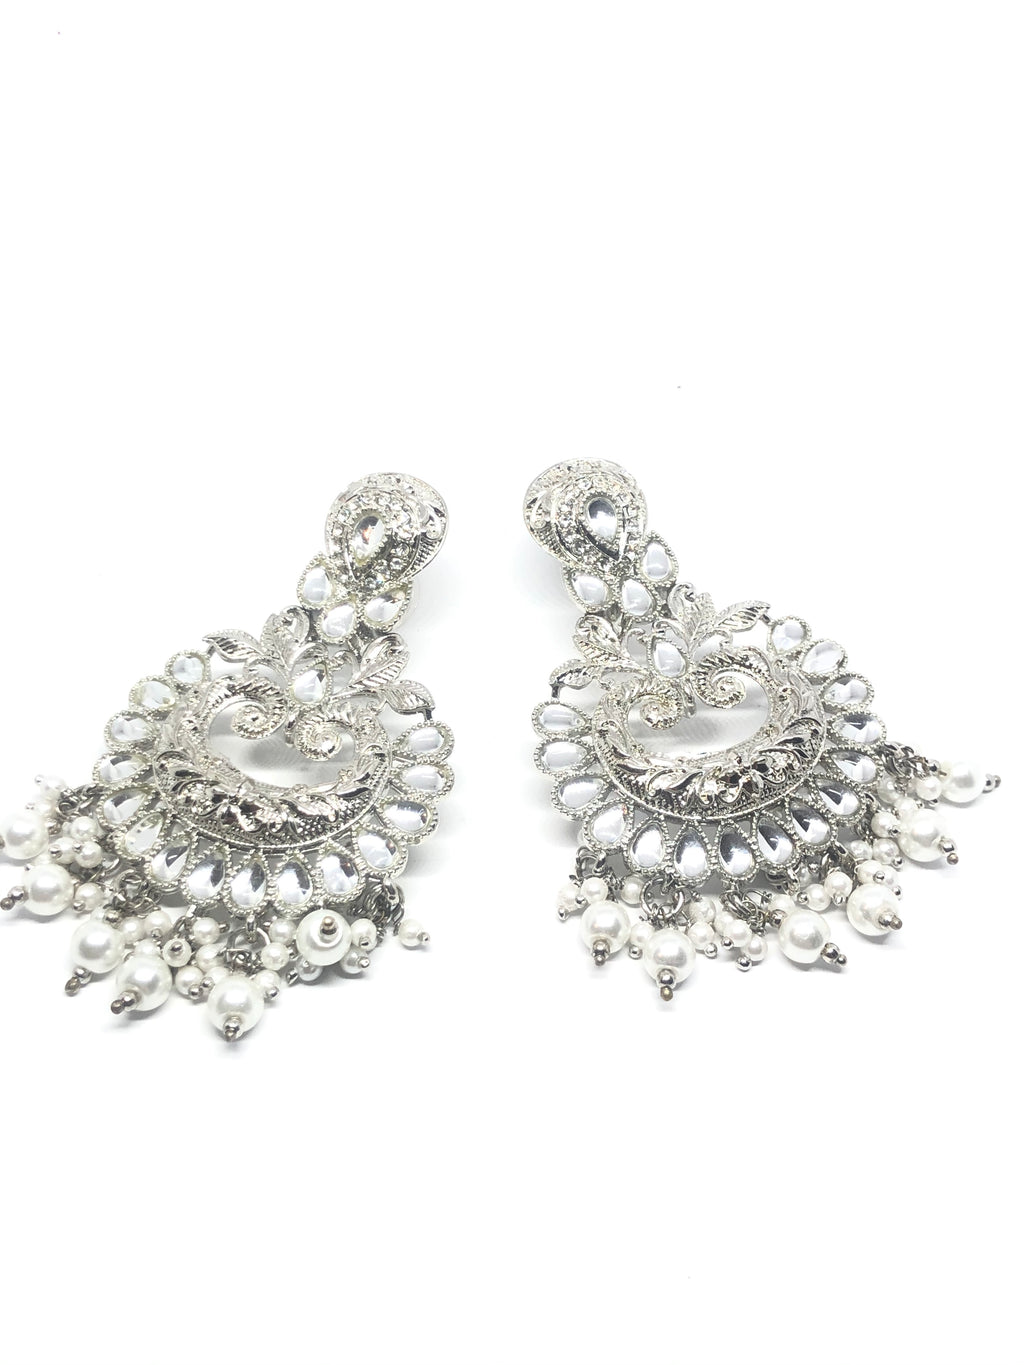 Silver Pearl Earrings with White Stones